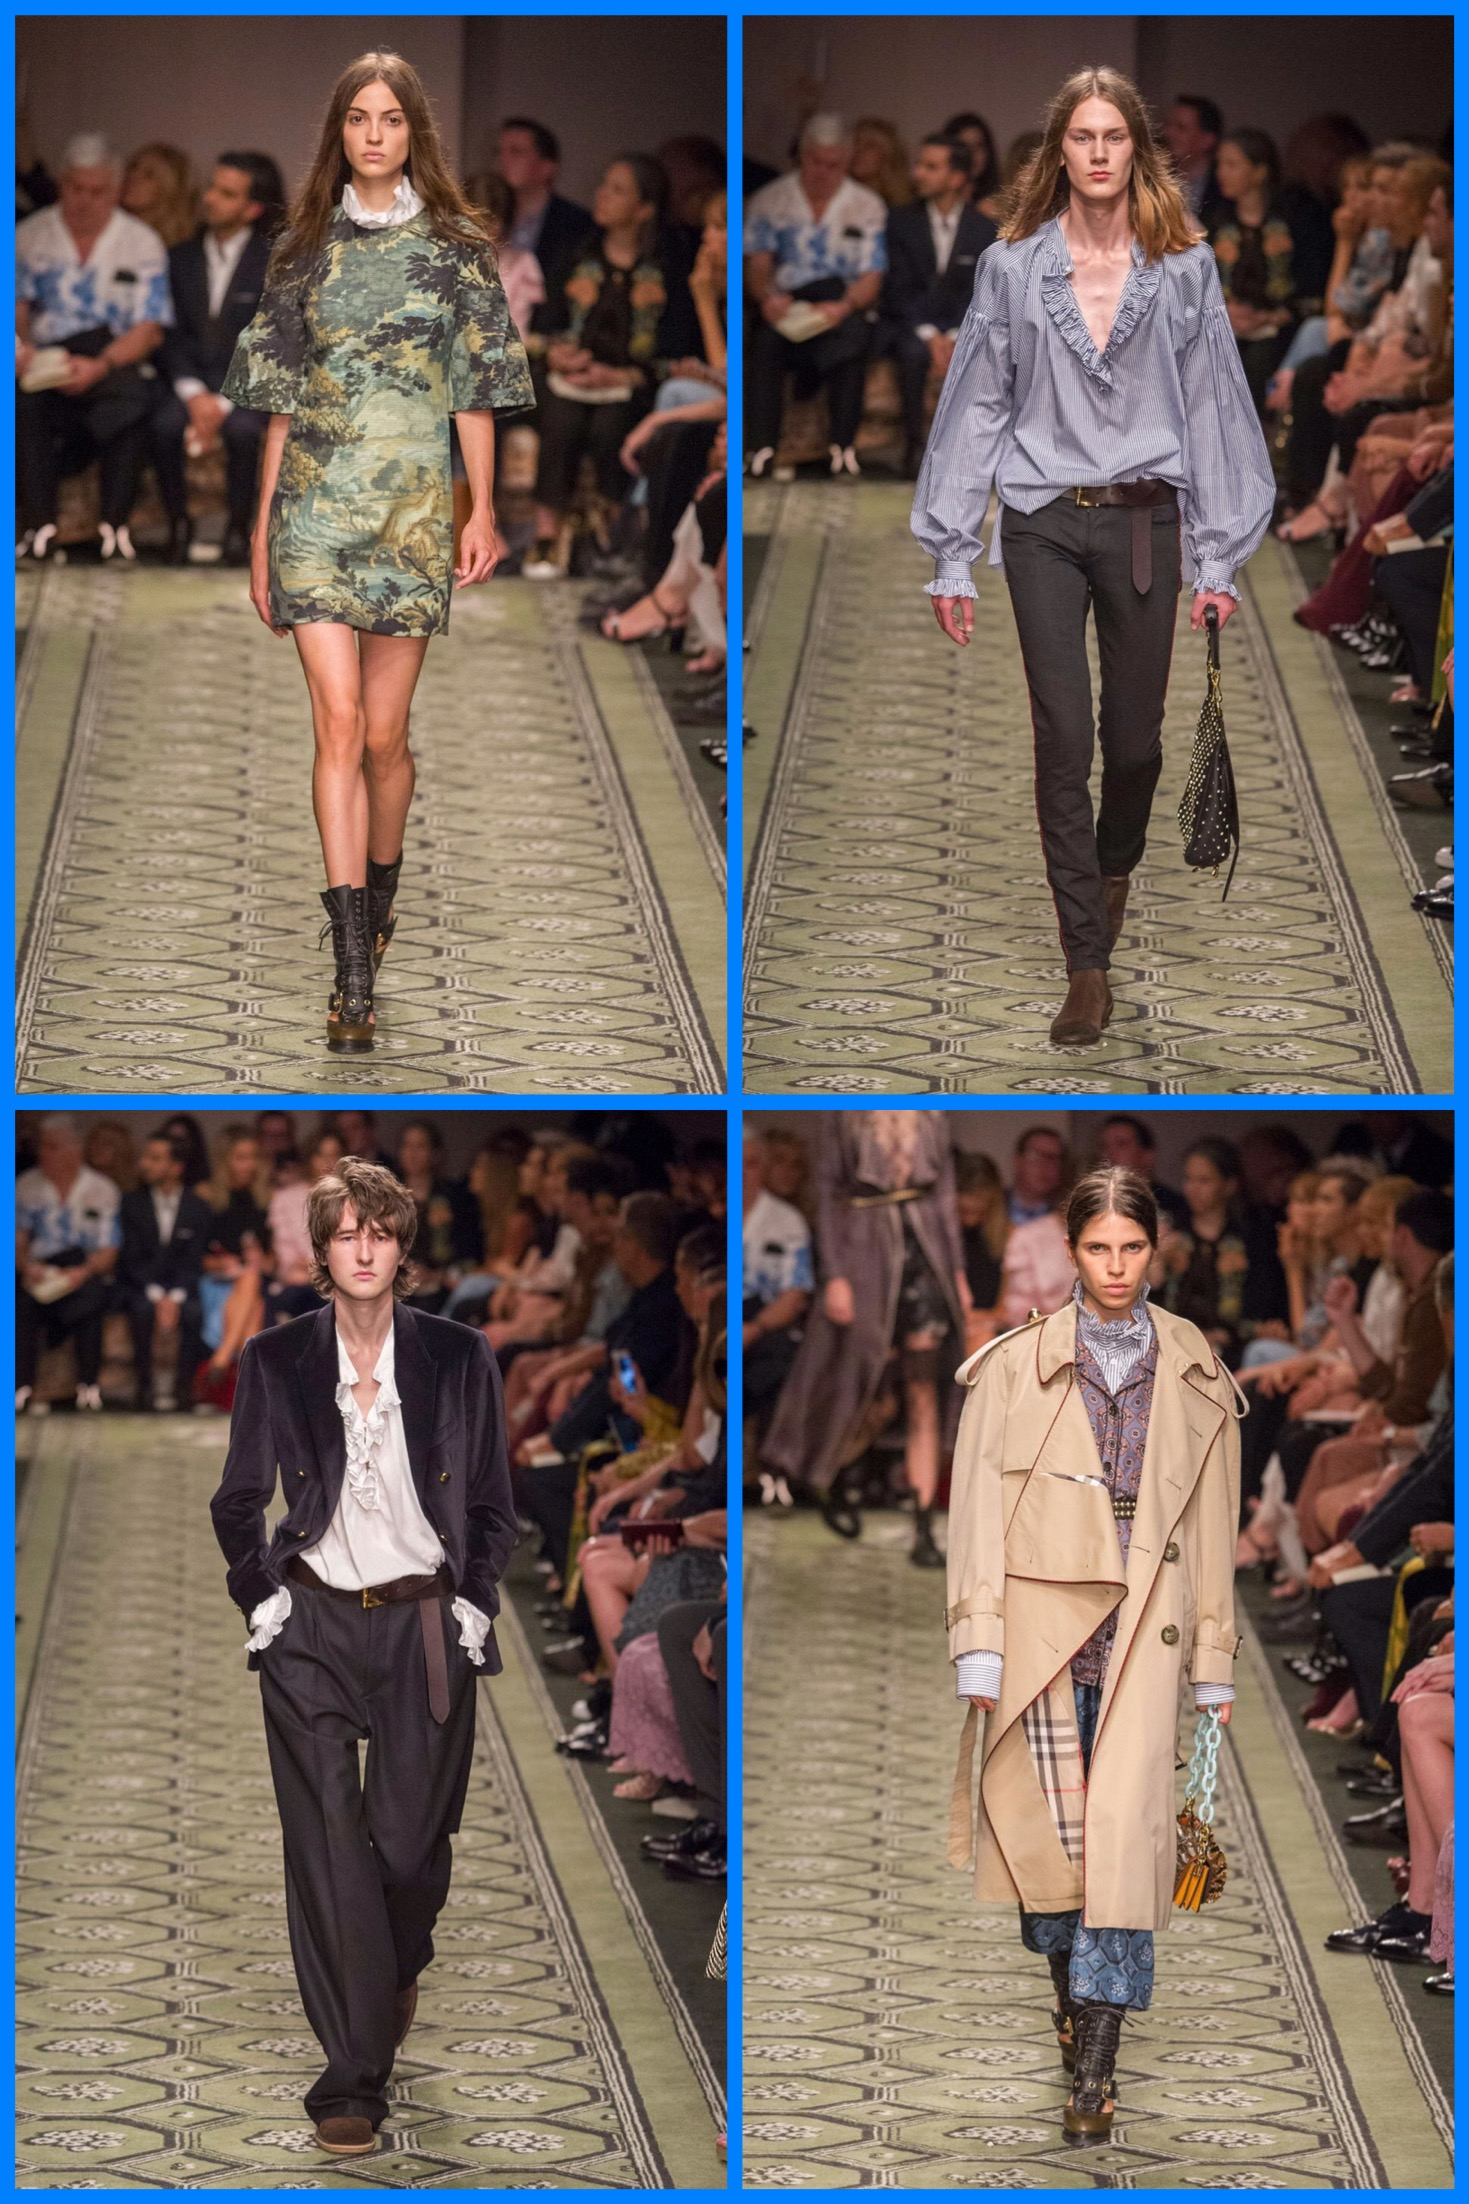 london-fashion-week-pret-a-porter-spring-summer-2017-style-burberry